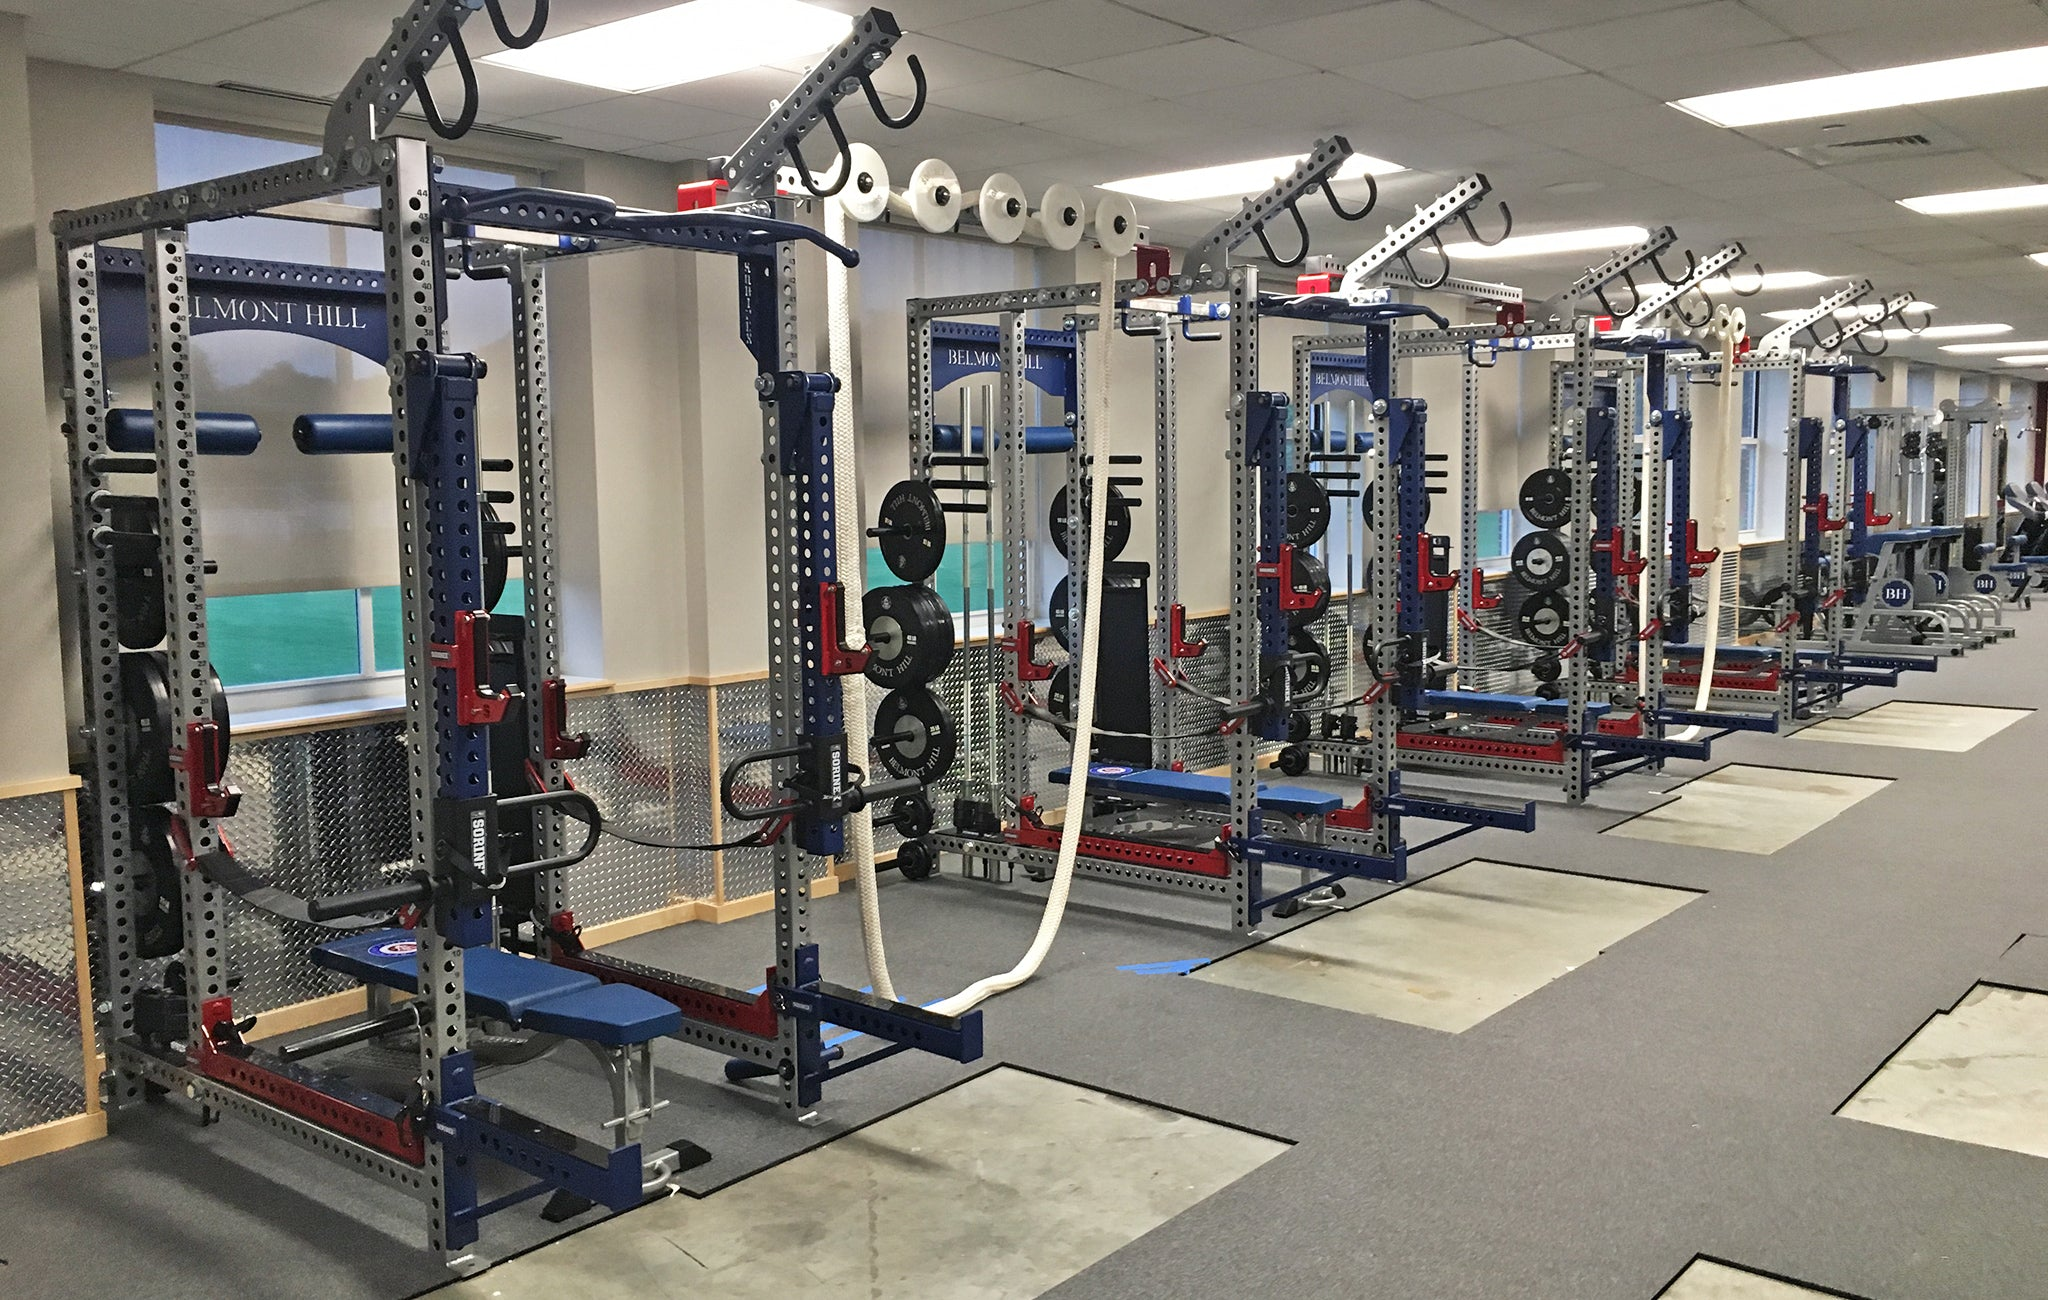 Belmont Hill Weight Room